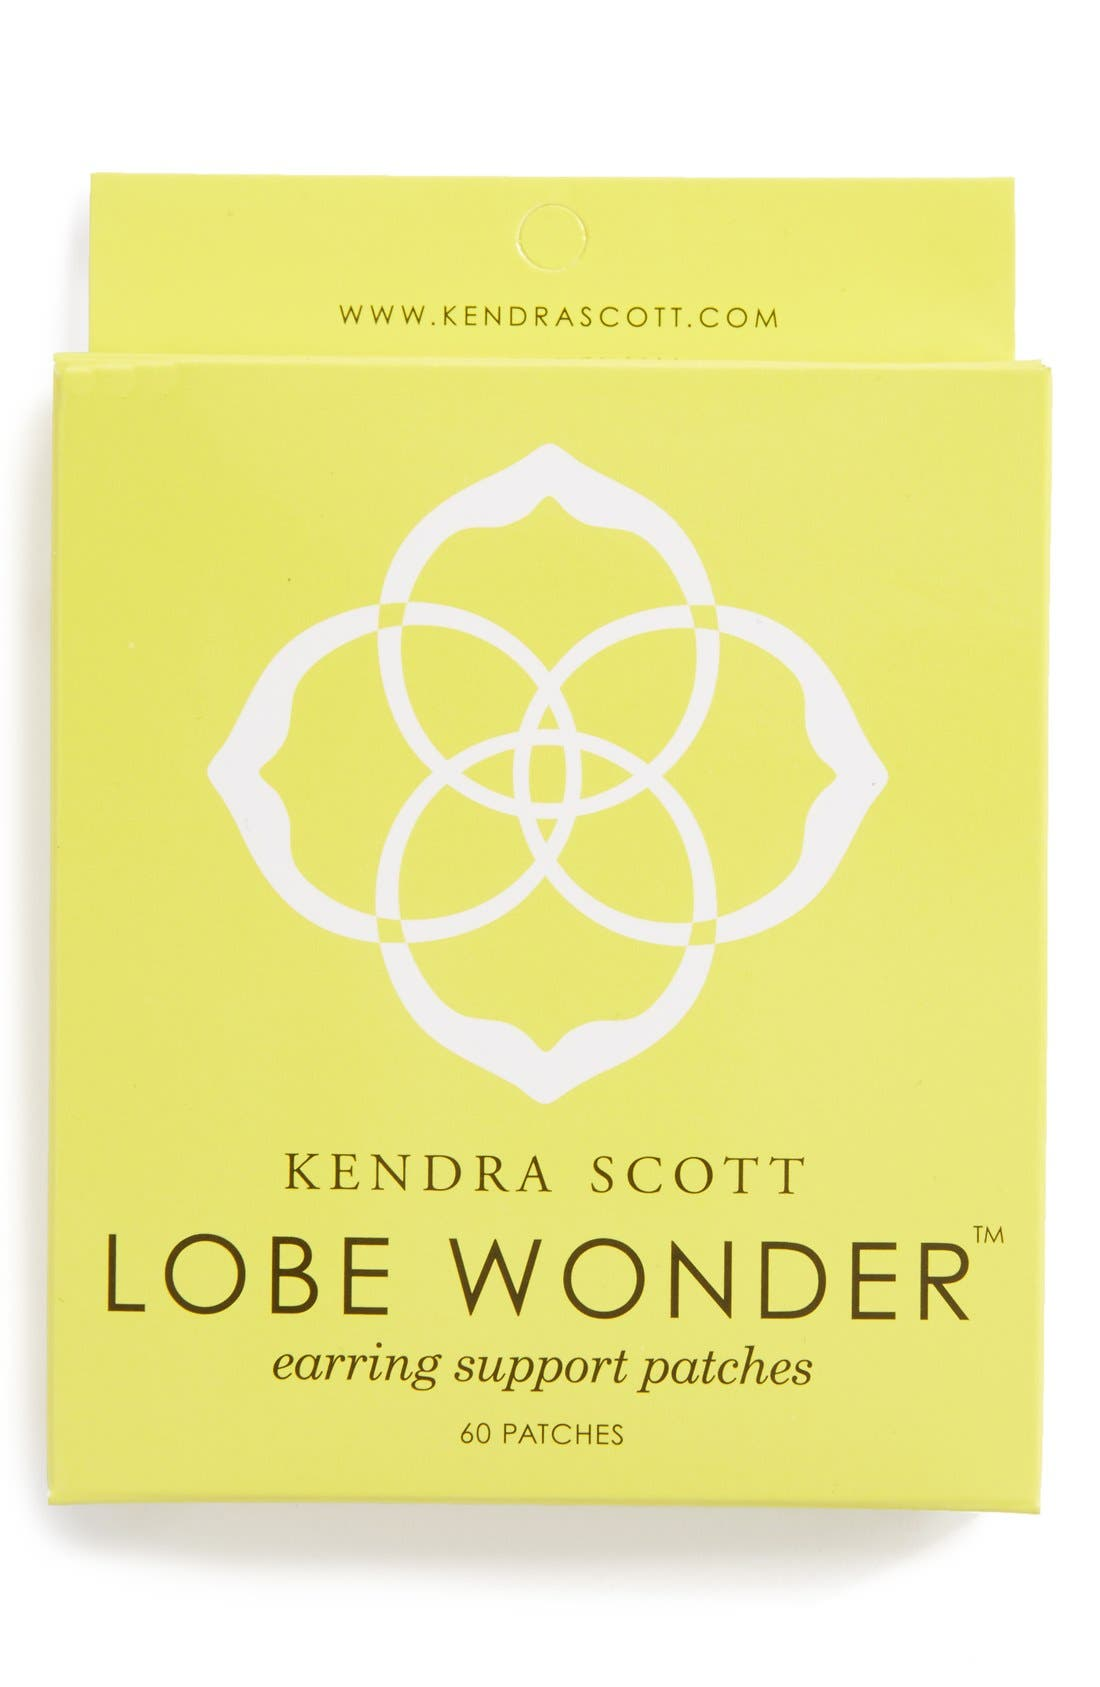 KENDRA SCOTT 'Lobe Wonder™' Earring Support Patches